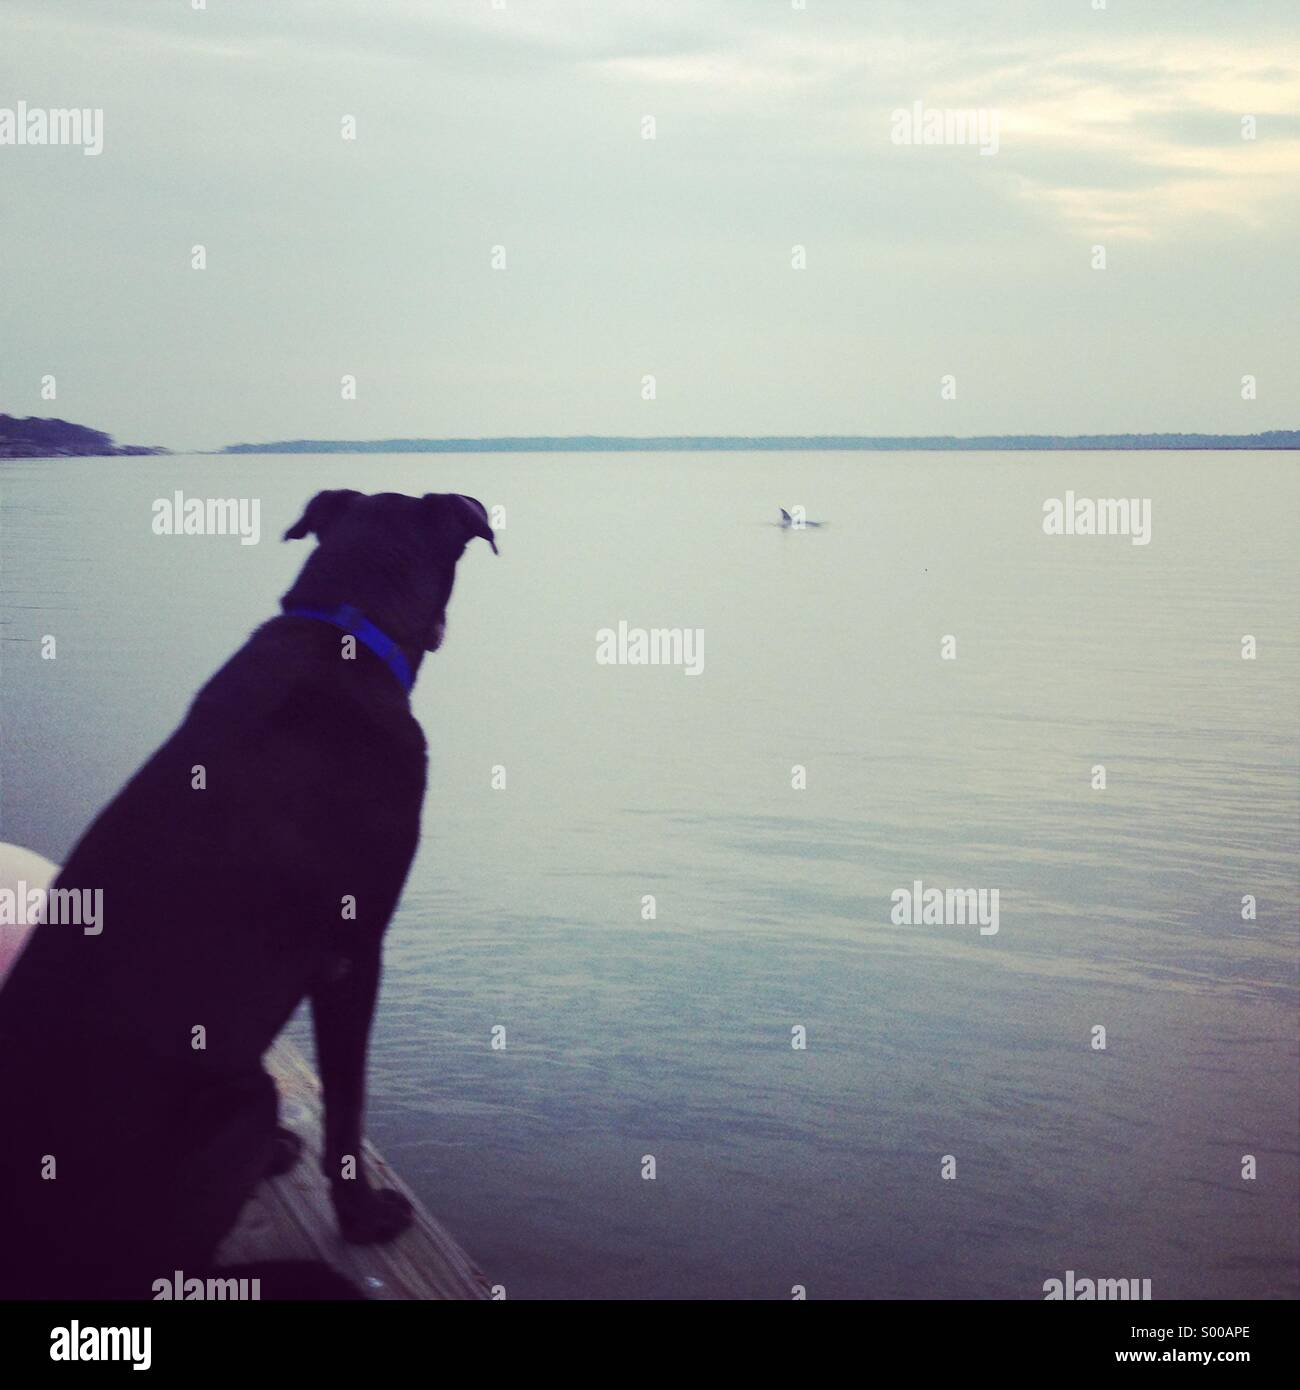 Dog looking at a dolphin in the Wilmington River. - Stock Image